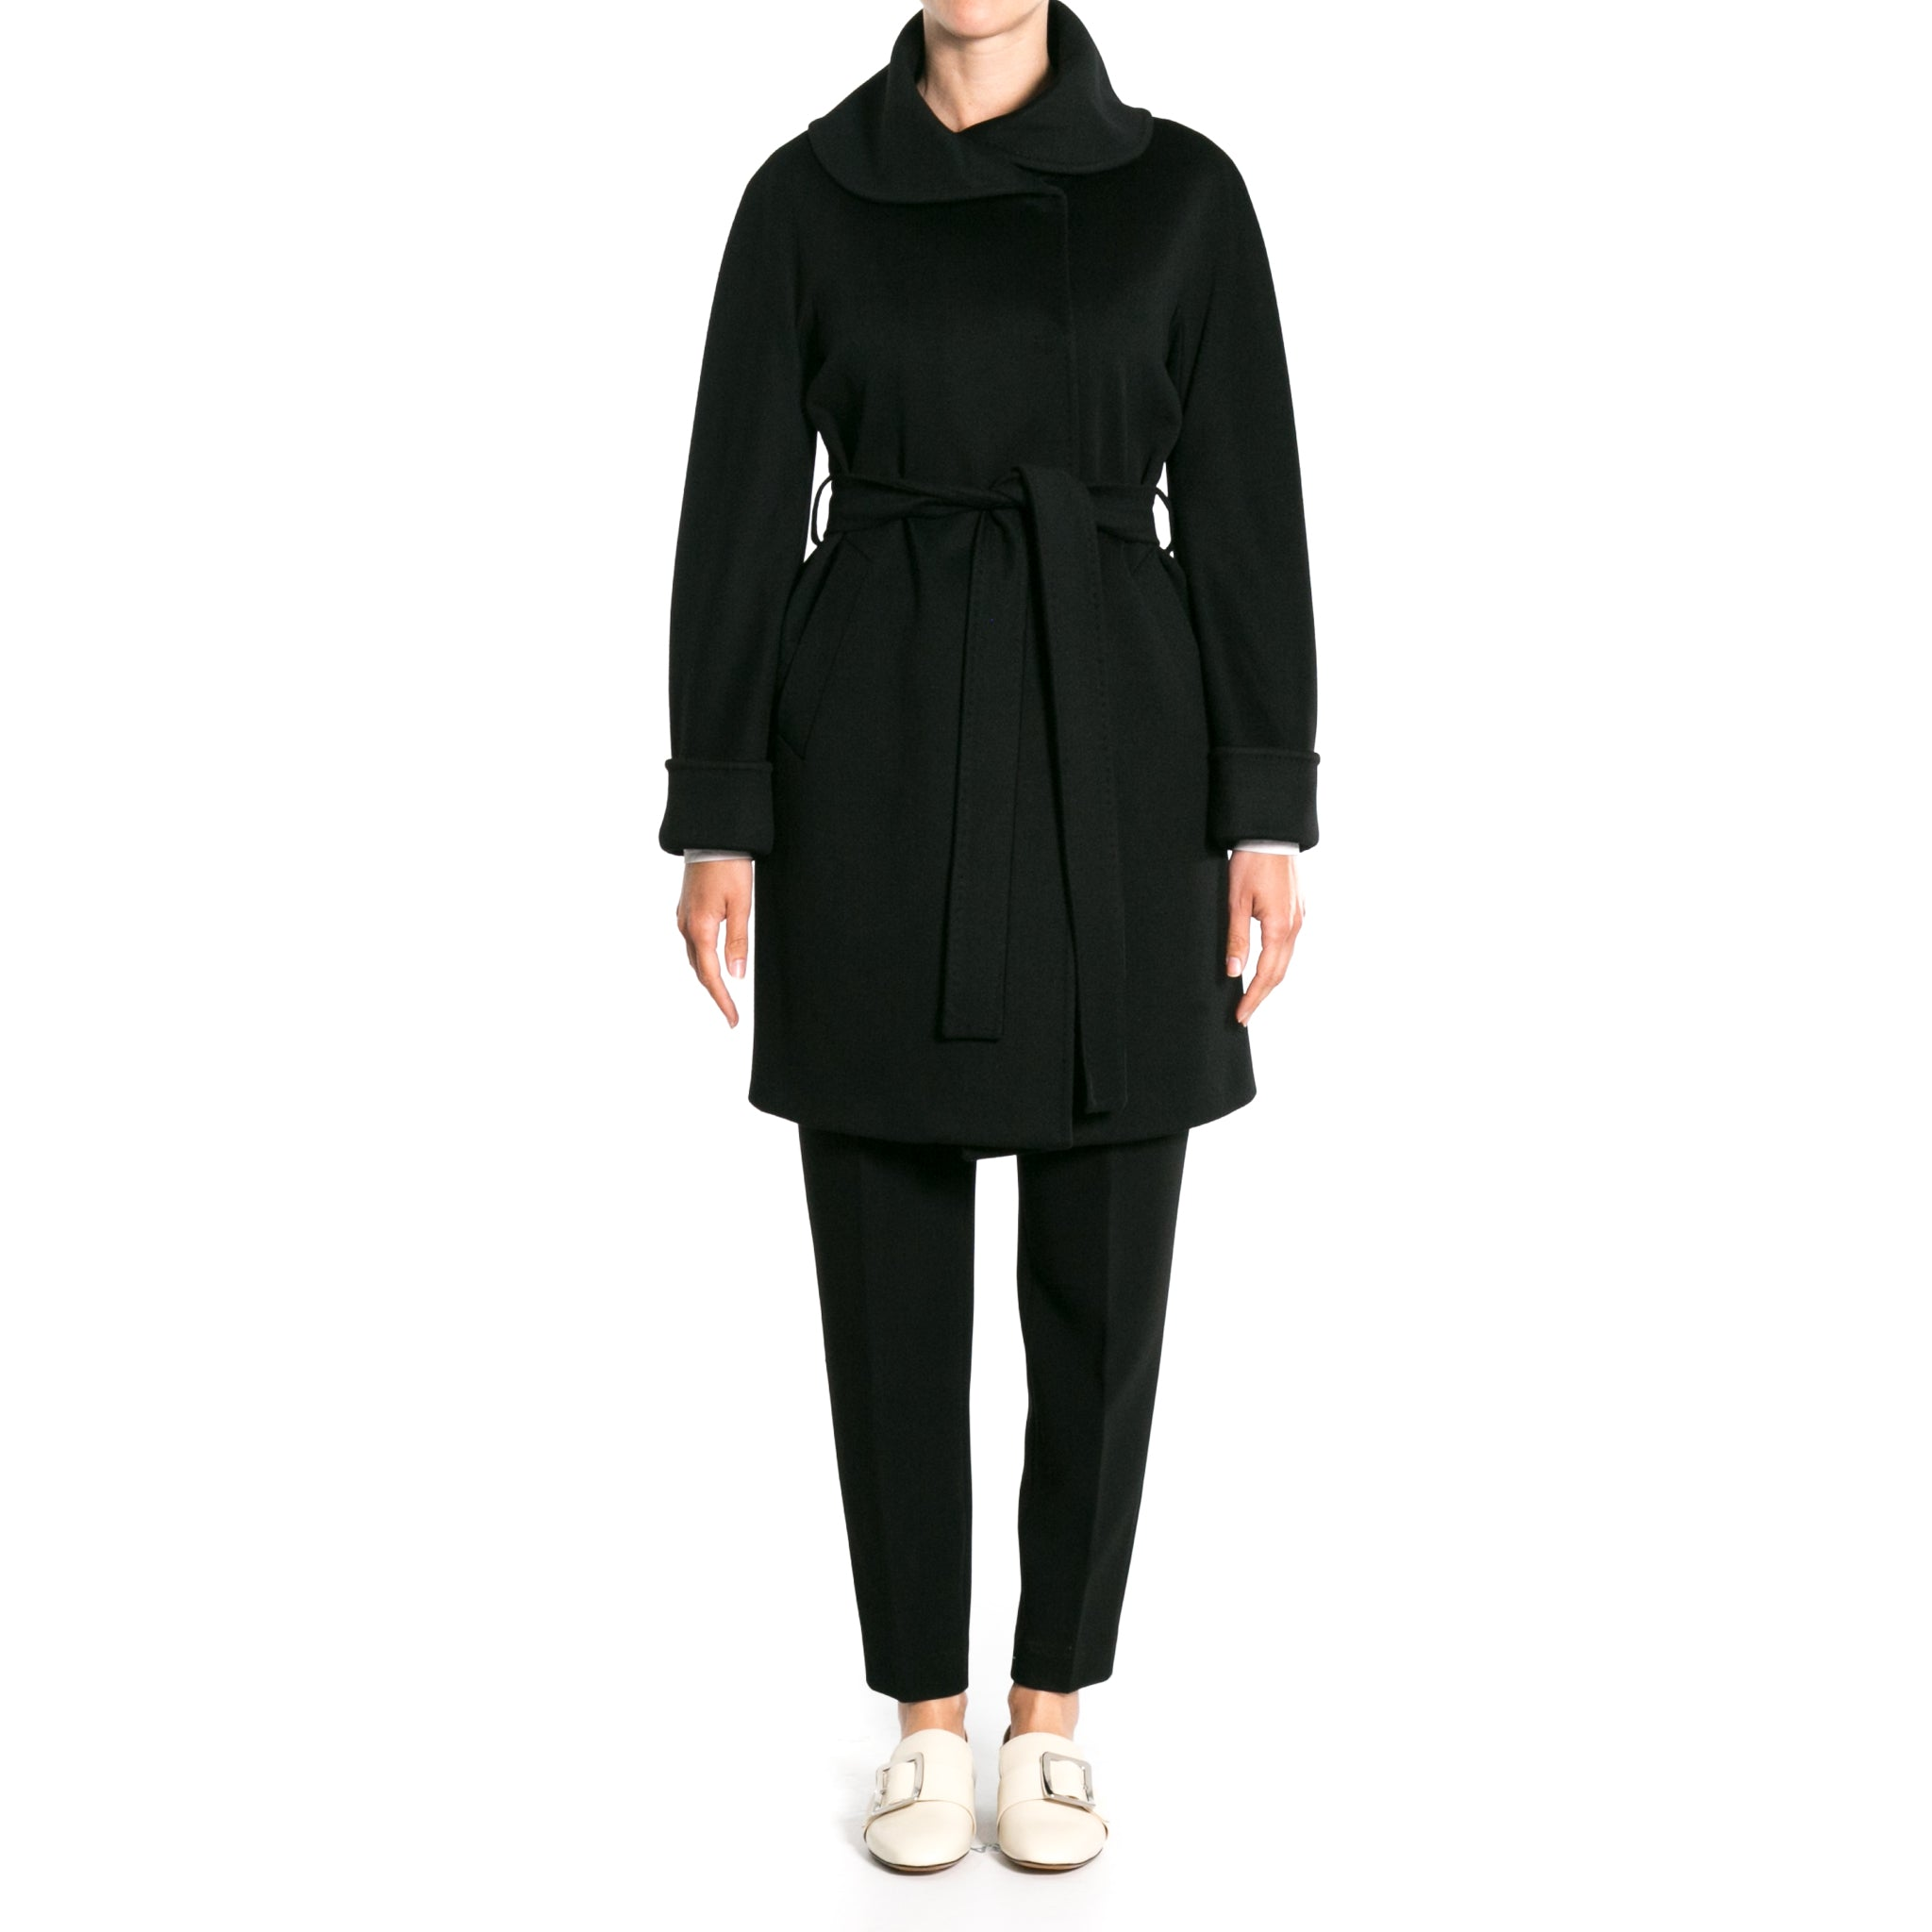 Wool Coat-HERESIS-SHOPATVOI.COM - Luxury Fashion Designer